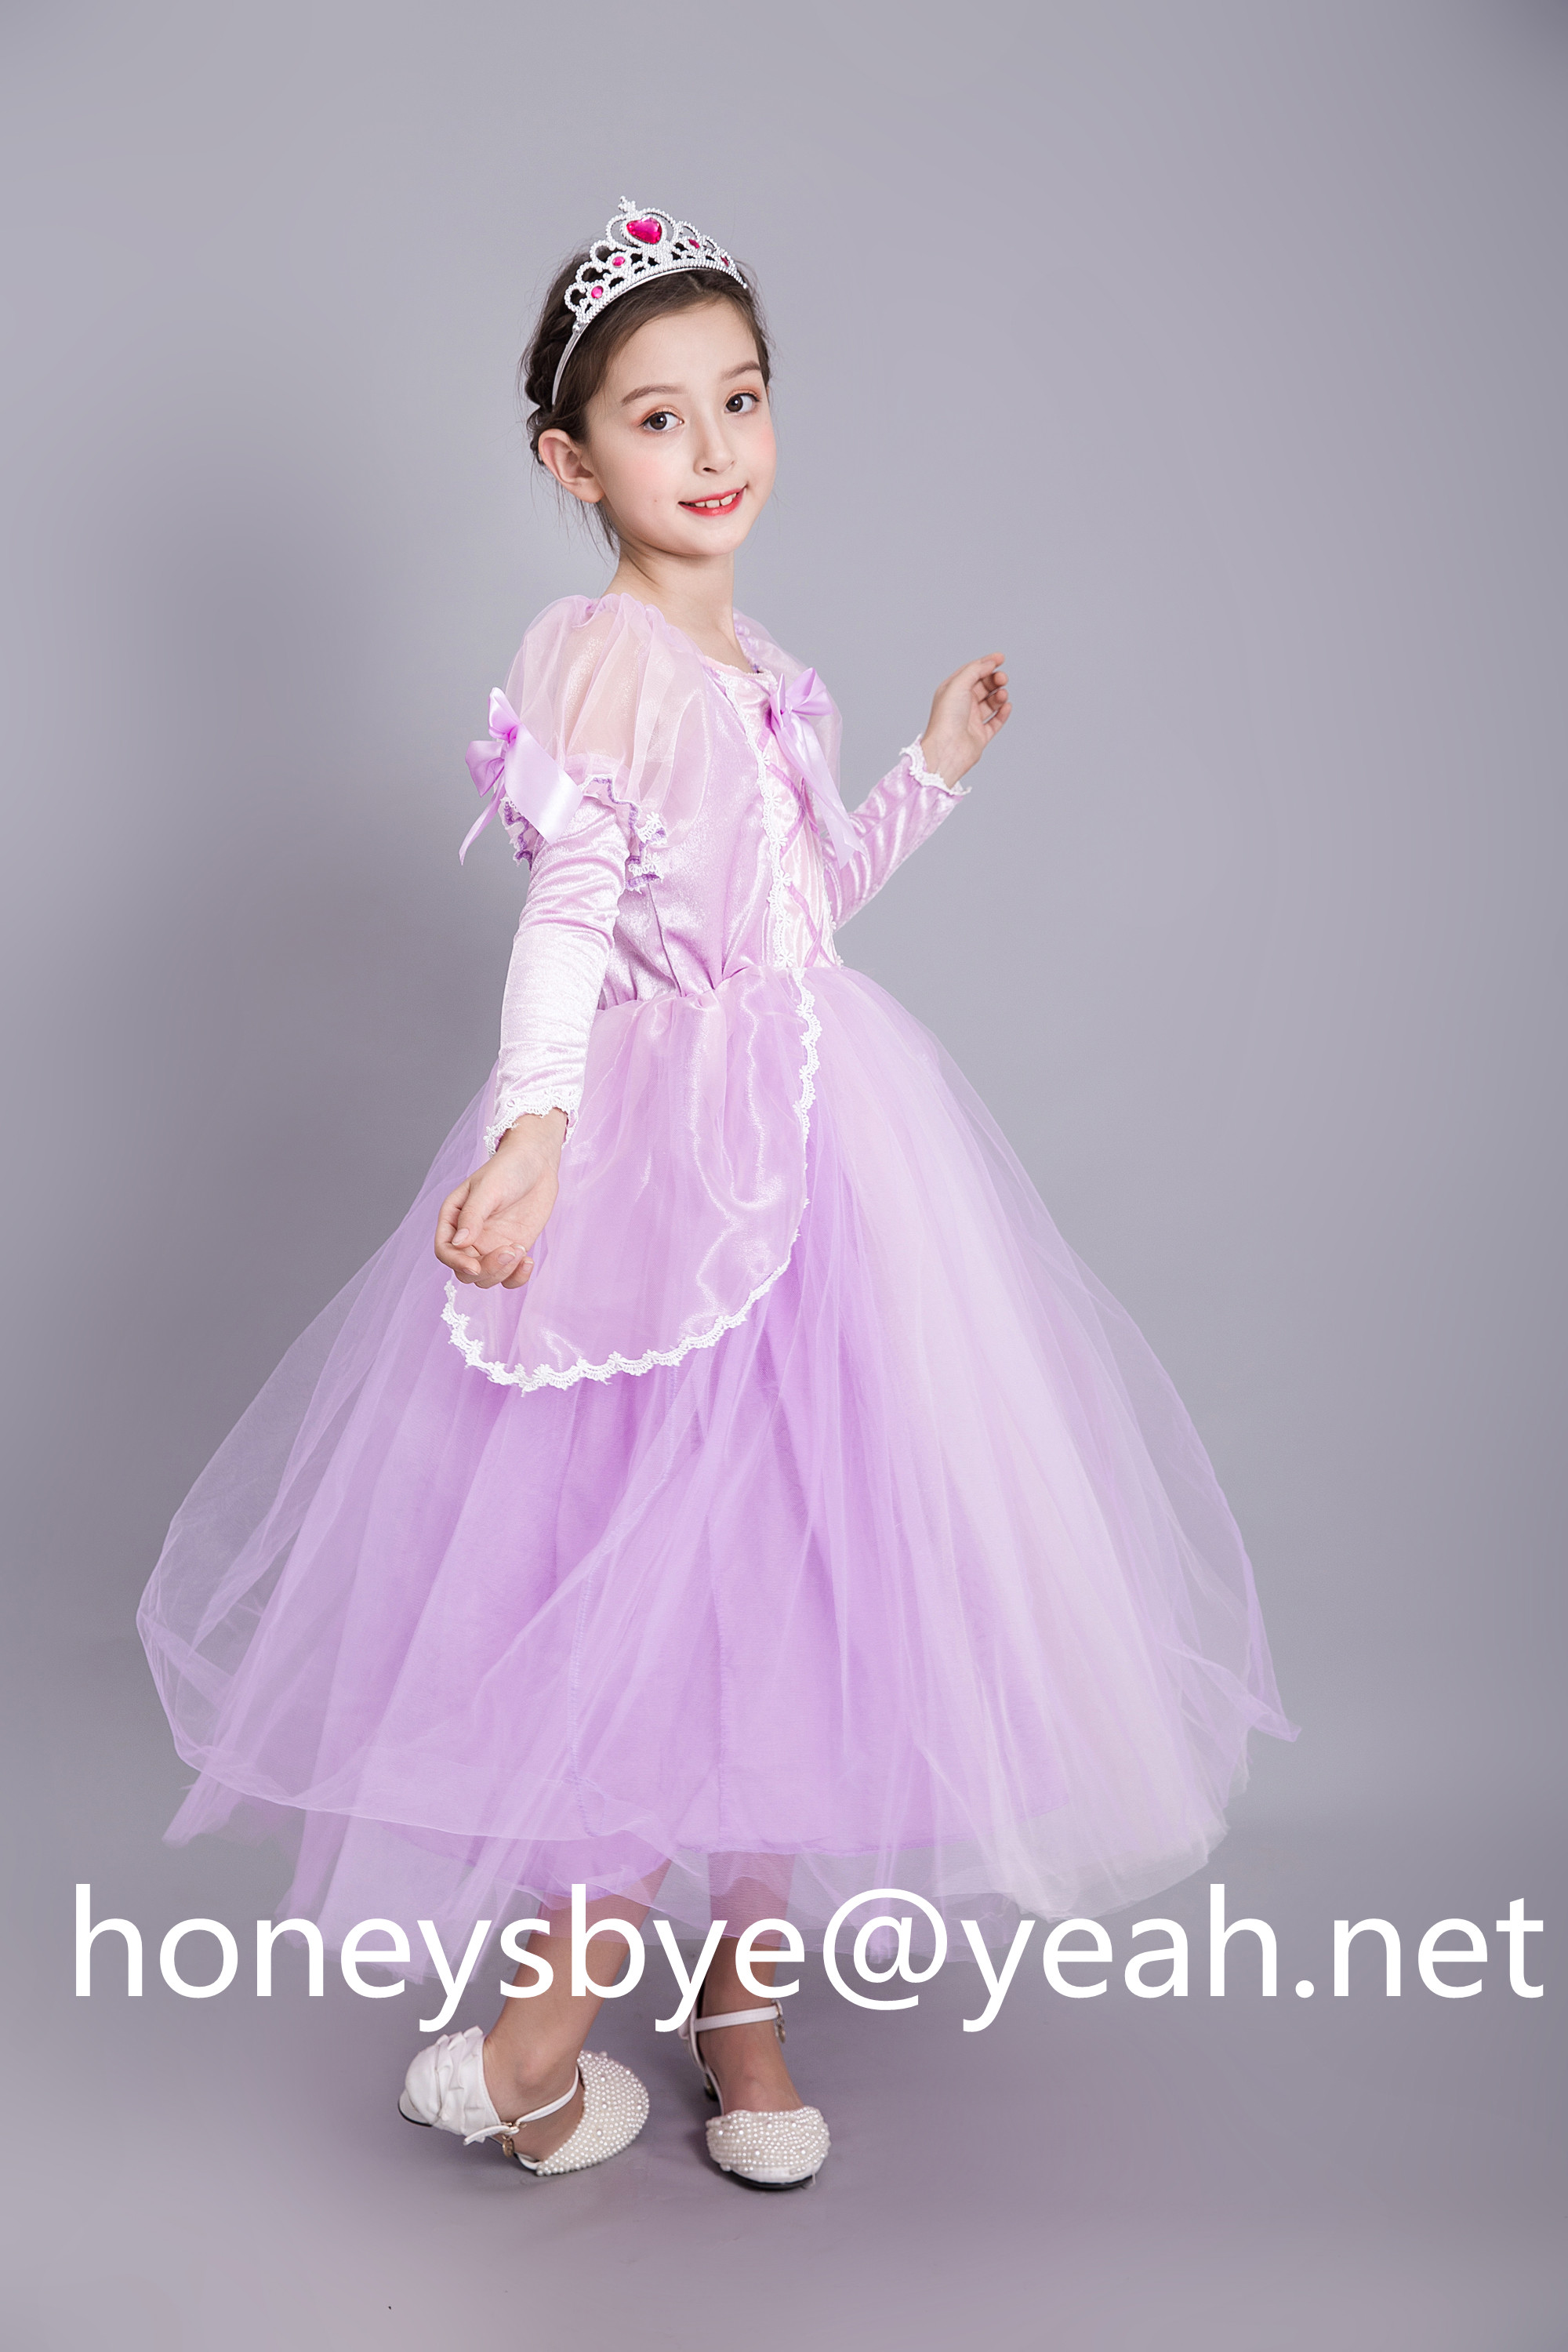 Kids Rapunzl Costume Rapunzel Dress for Children Dress Up Party